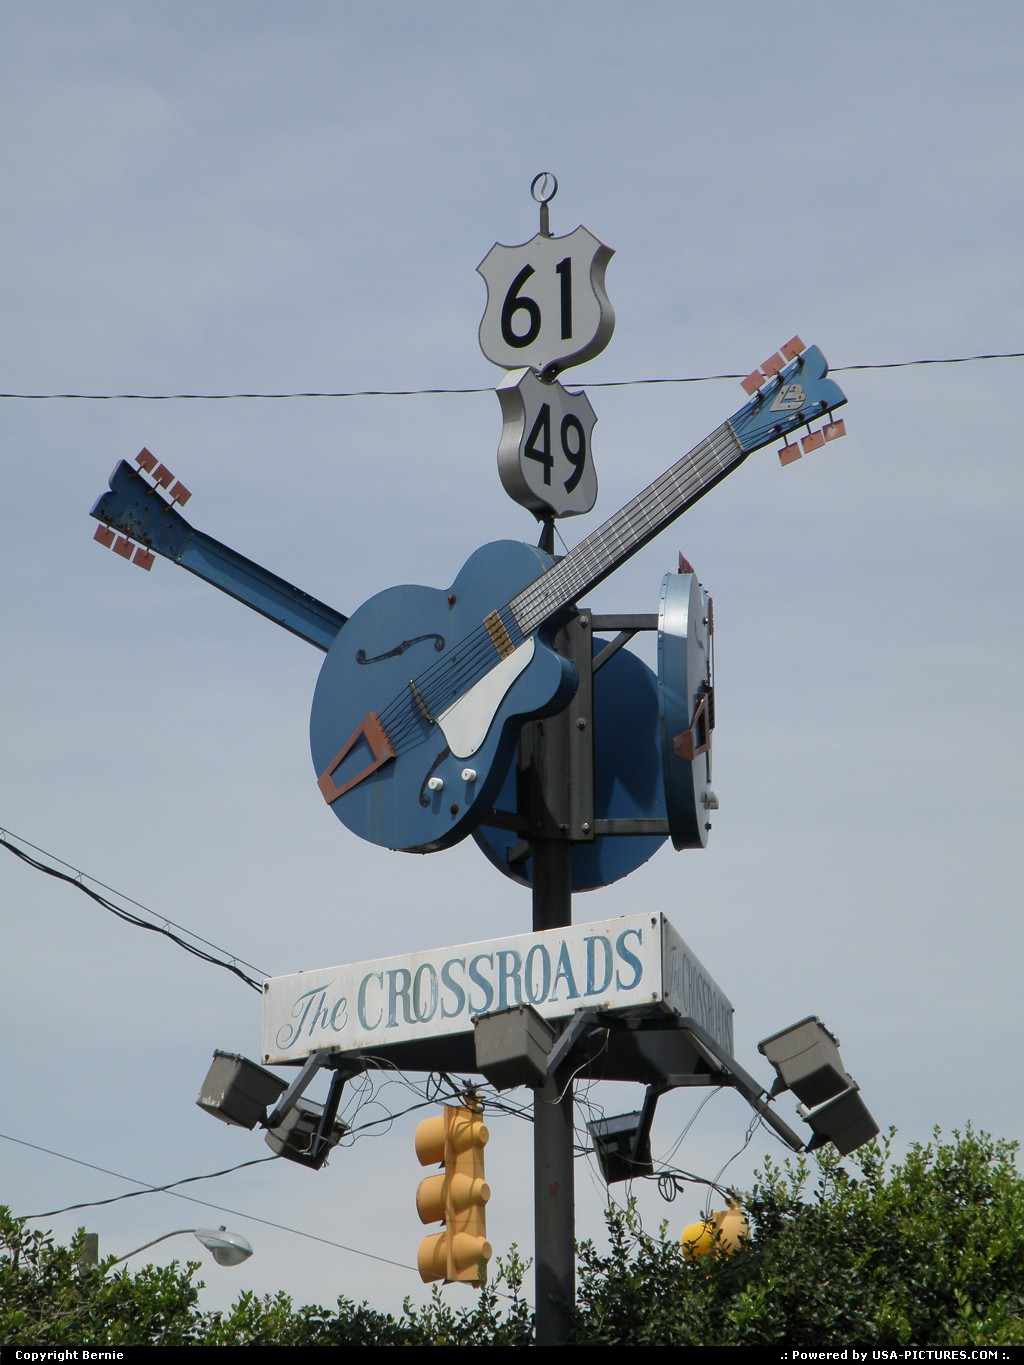 Picture by Bernie: Clarksdale Mississippi